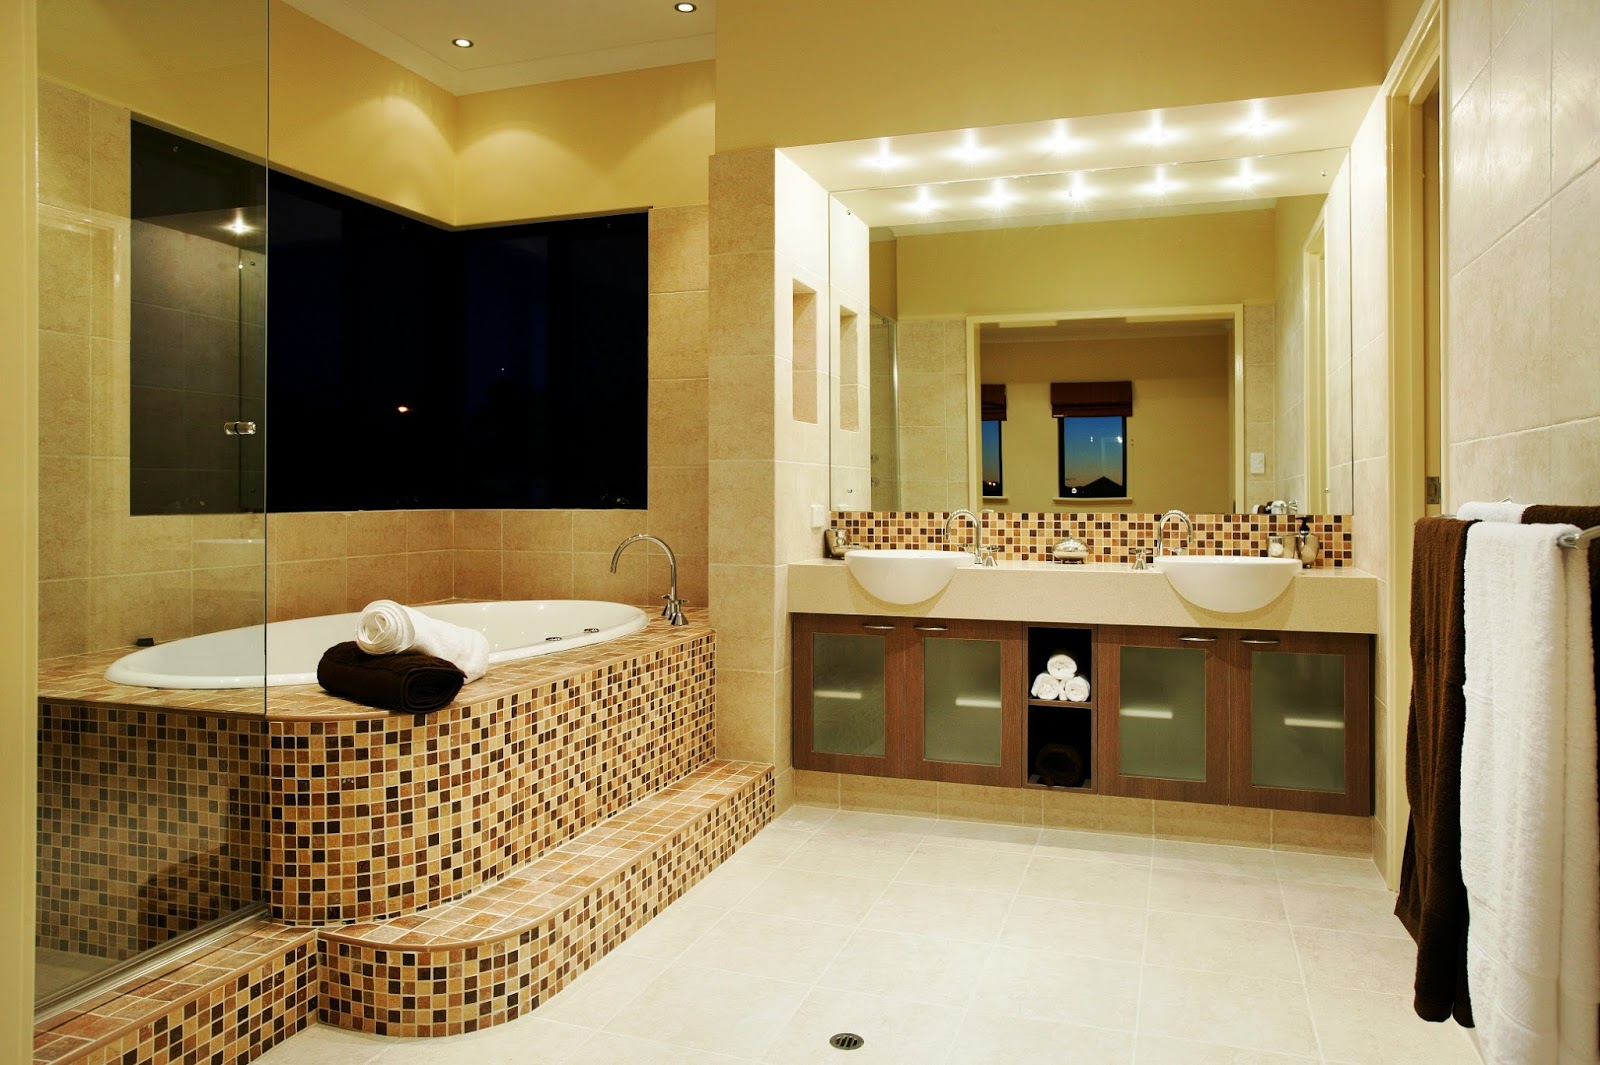 Home Interior Design Ideas Bathroom